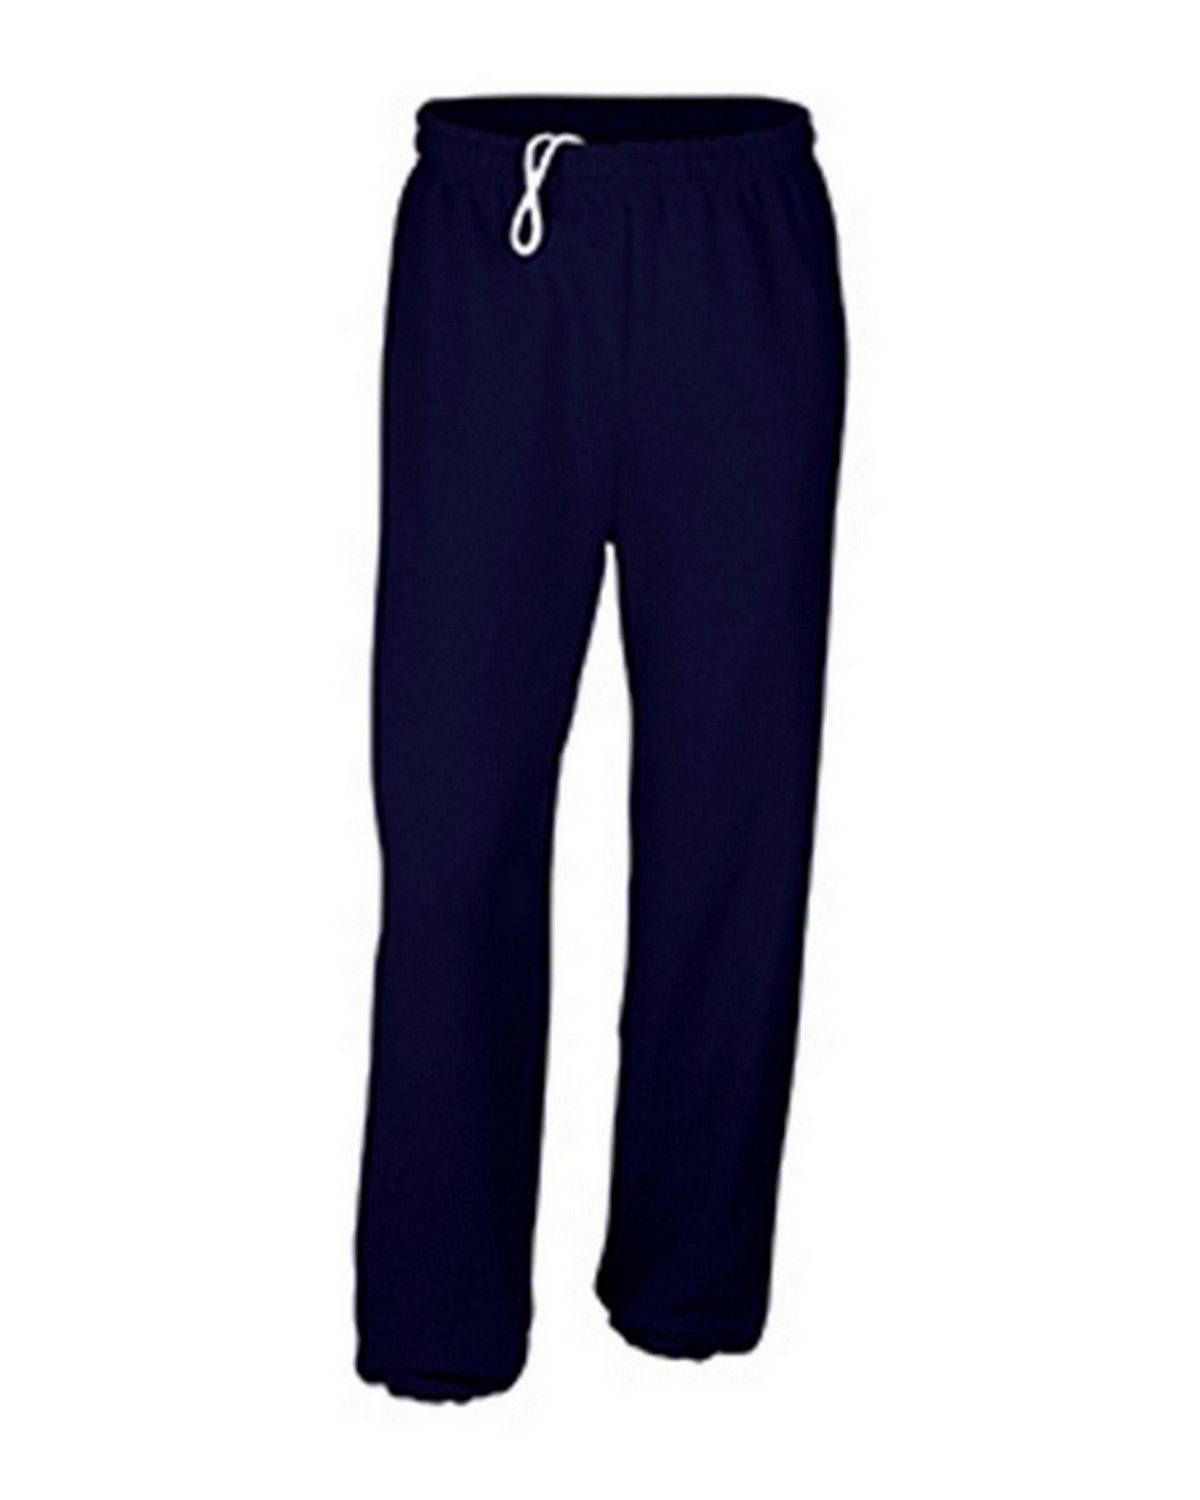 Gildan G18200B Heavy Blend Youth Sweatpants - Navy - L G18200B